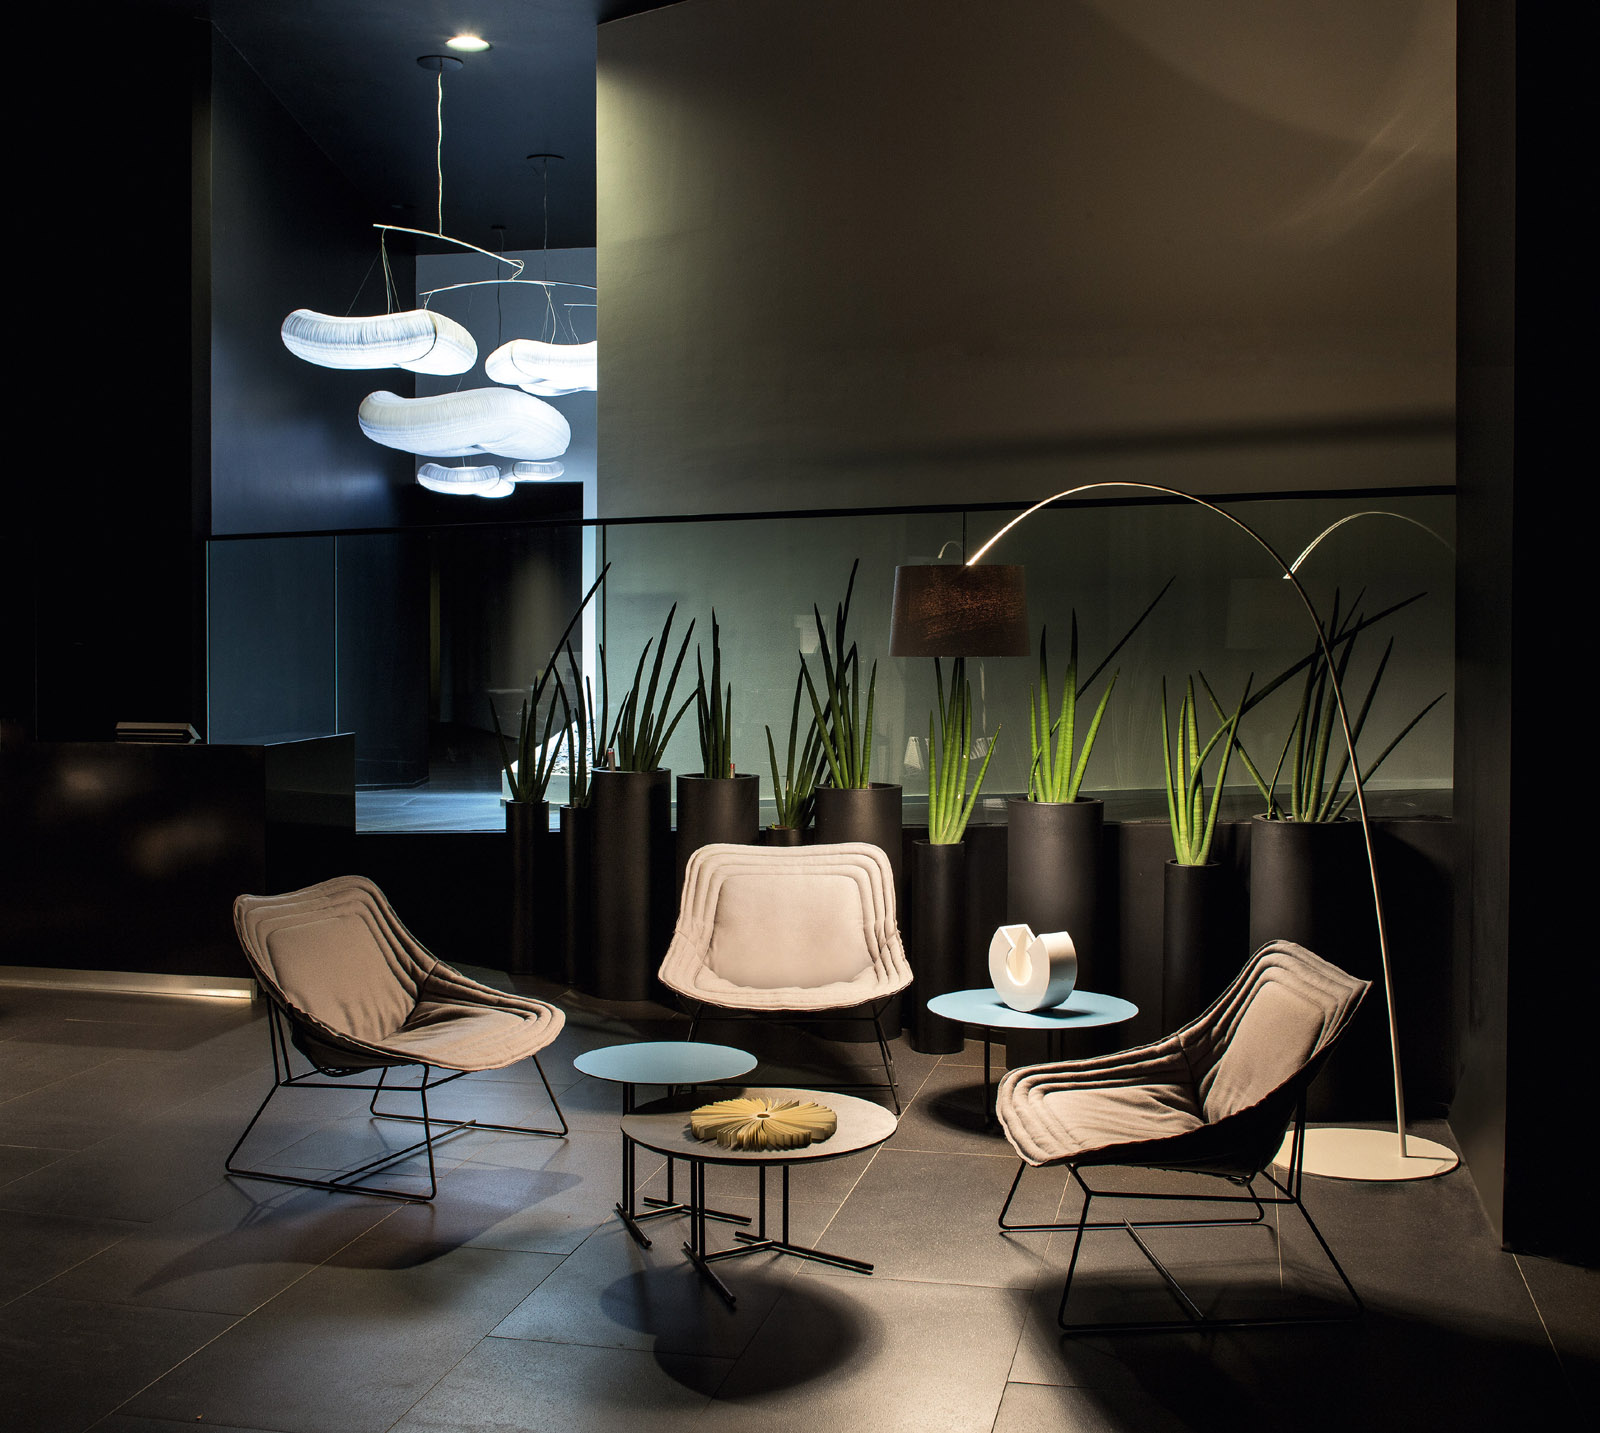 Chapeau Chaise Lounge